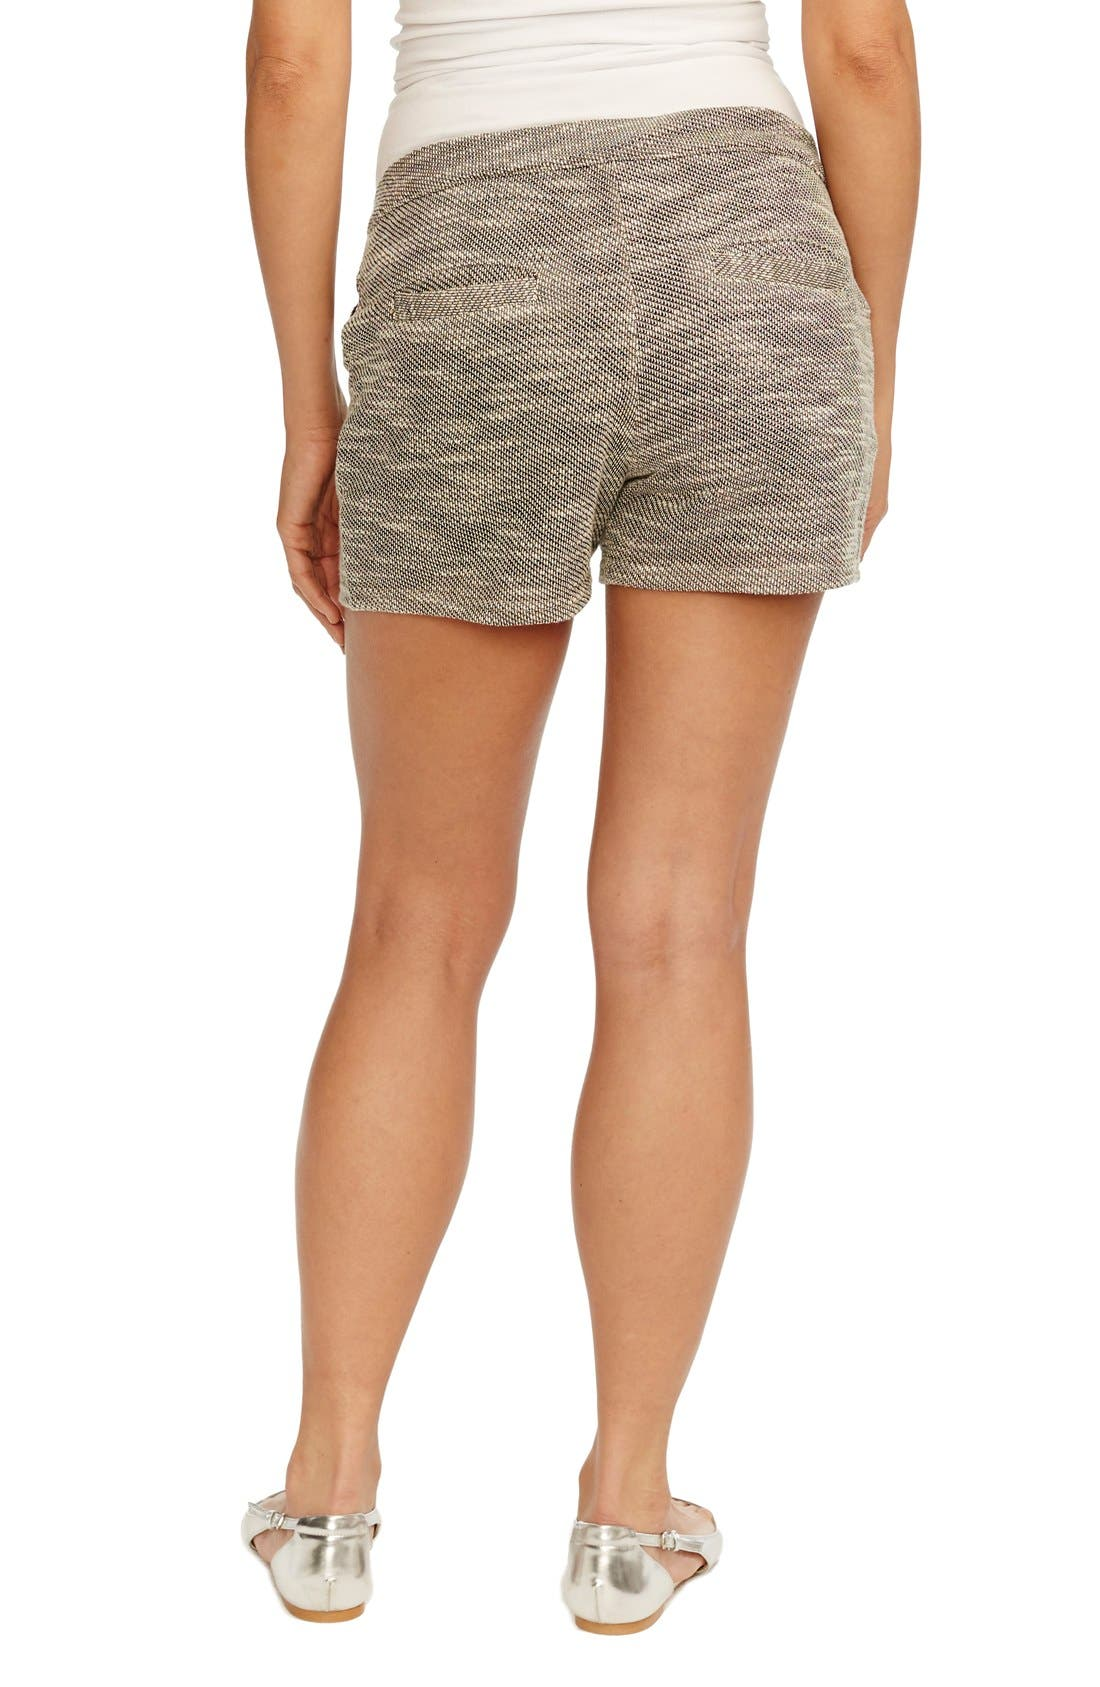 'Boardwalk' Woven Maternity Shorts,                             Alternate thumbnail 3, color,                             002